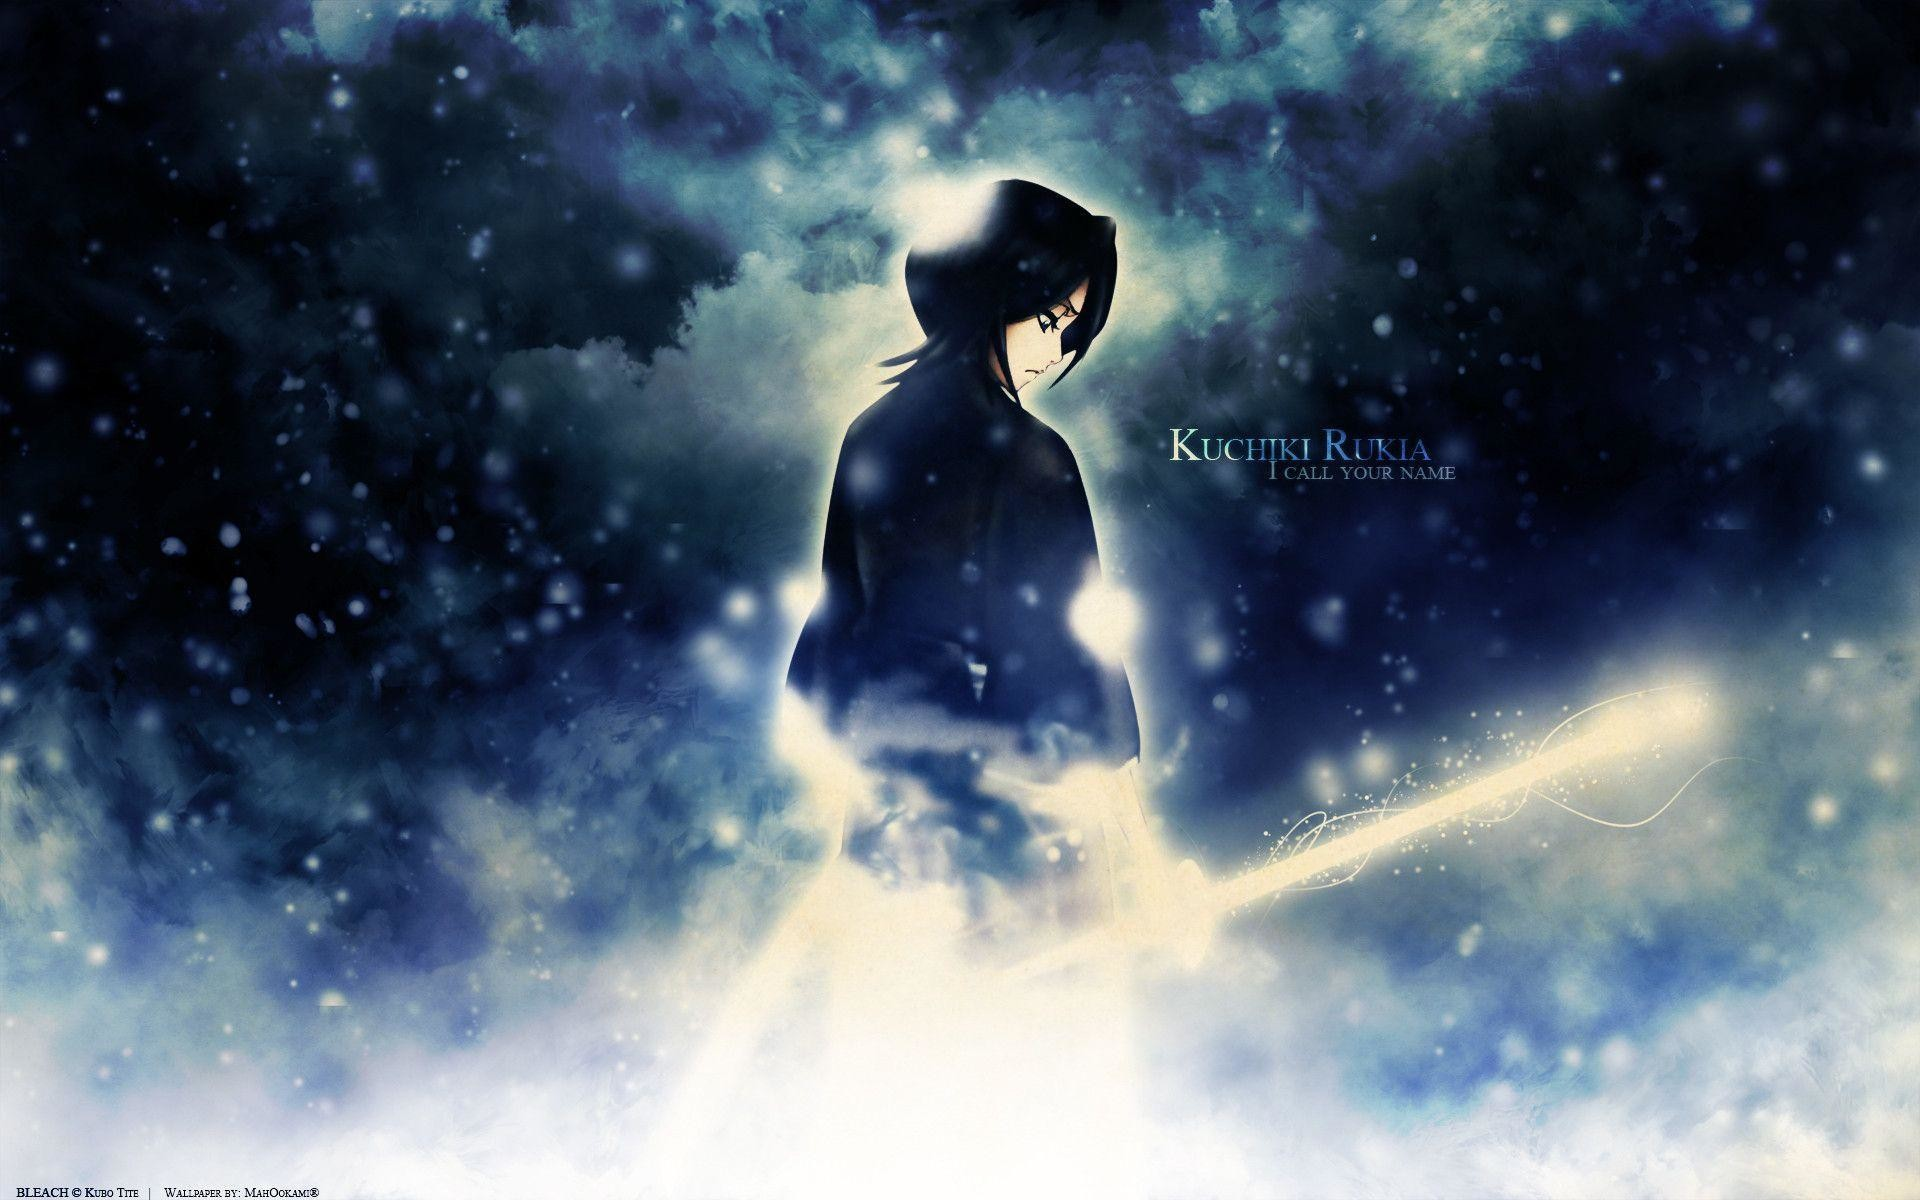 1920x1200 Images For > Bleach Rukia Kuchiki Wallpaper